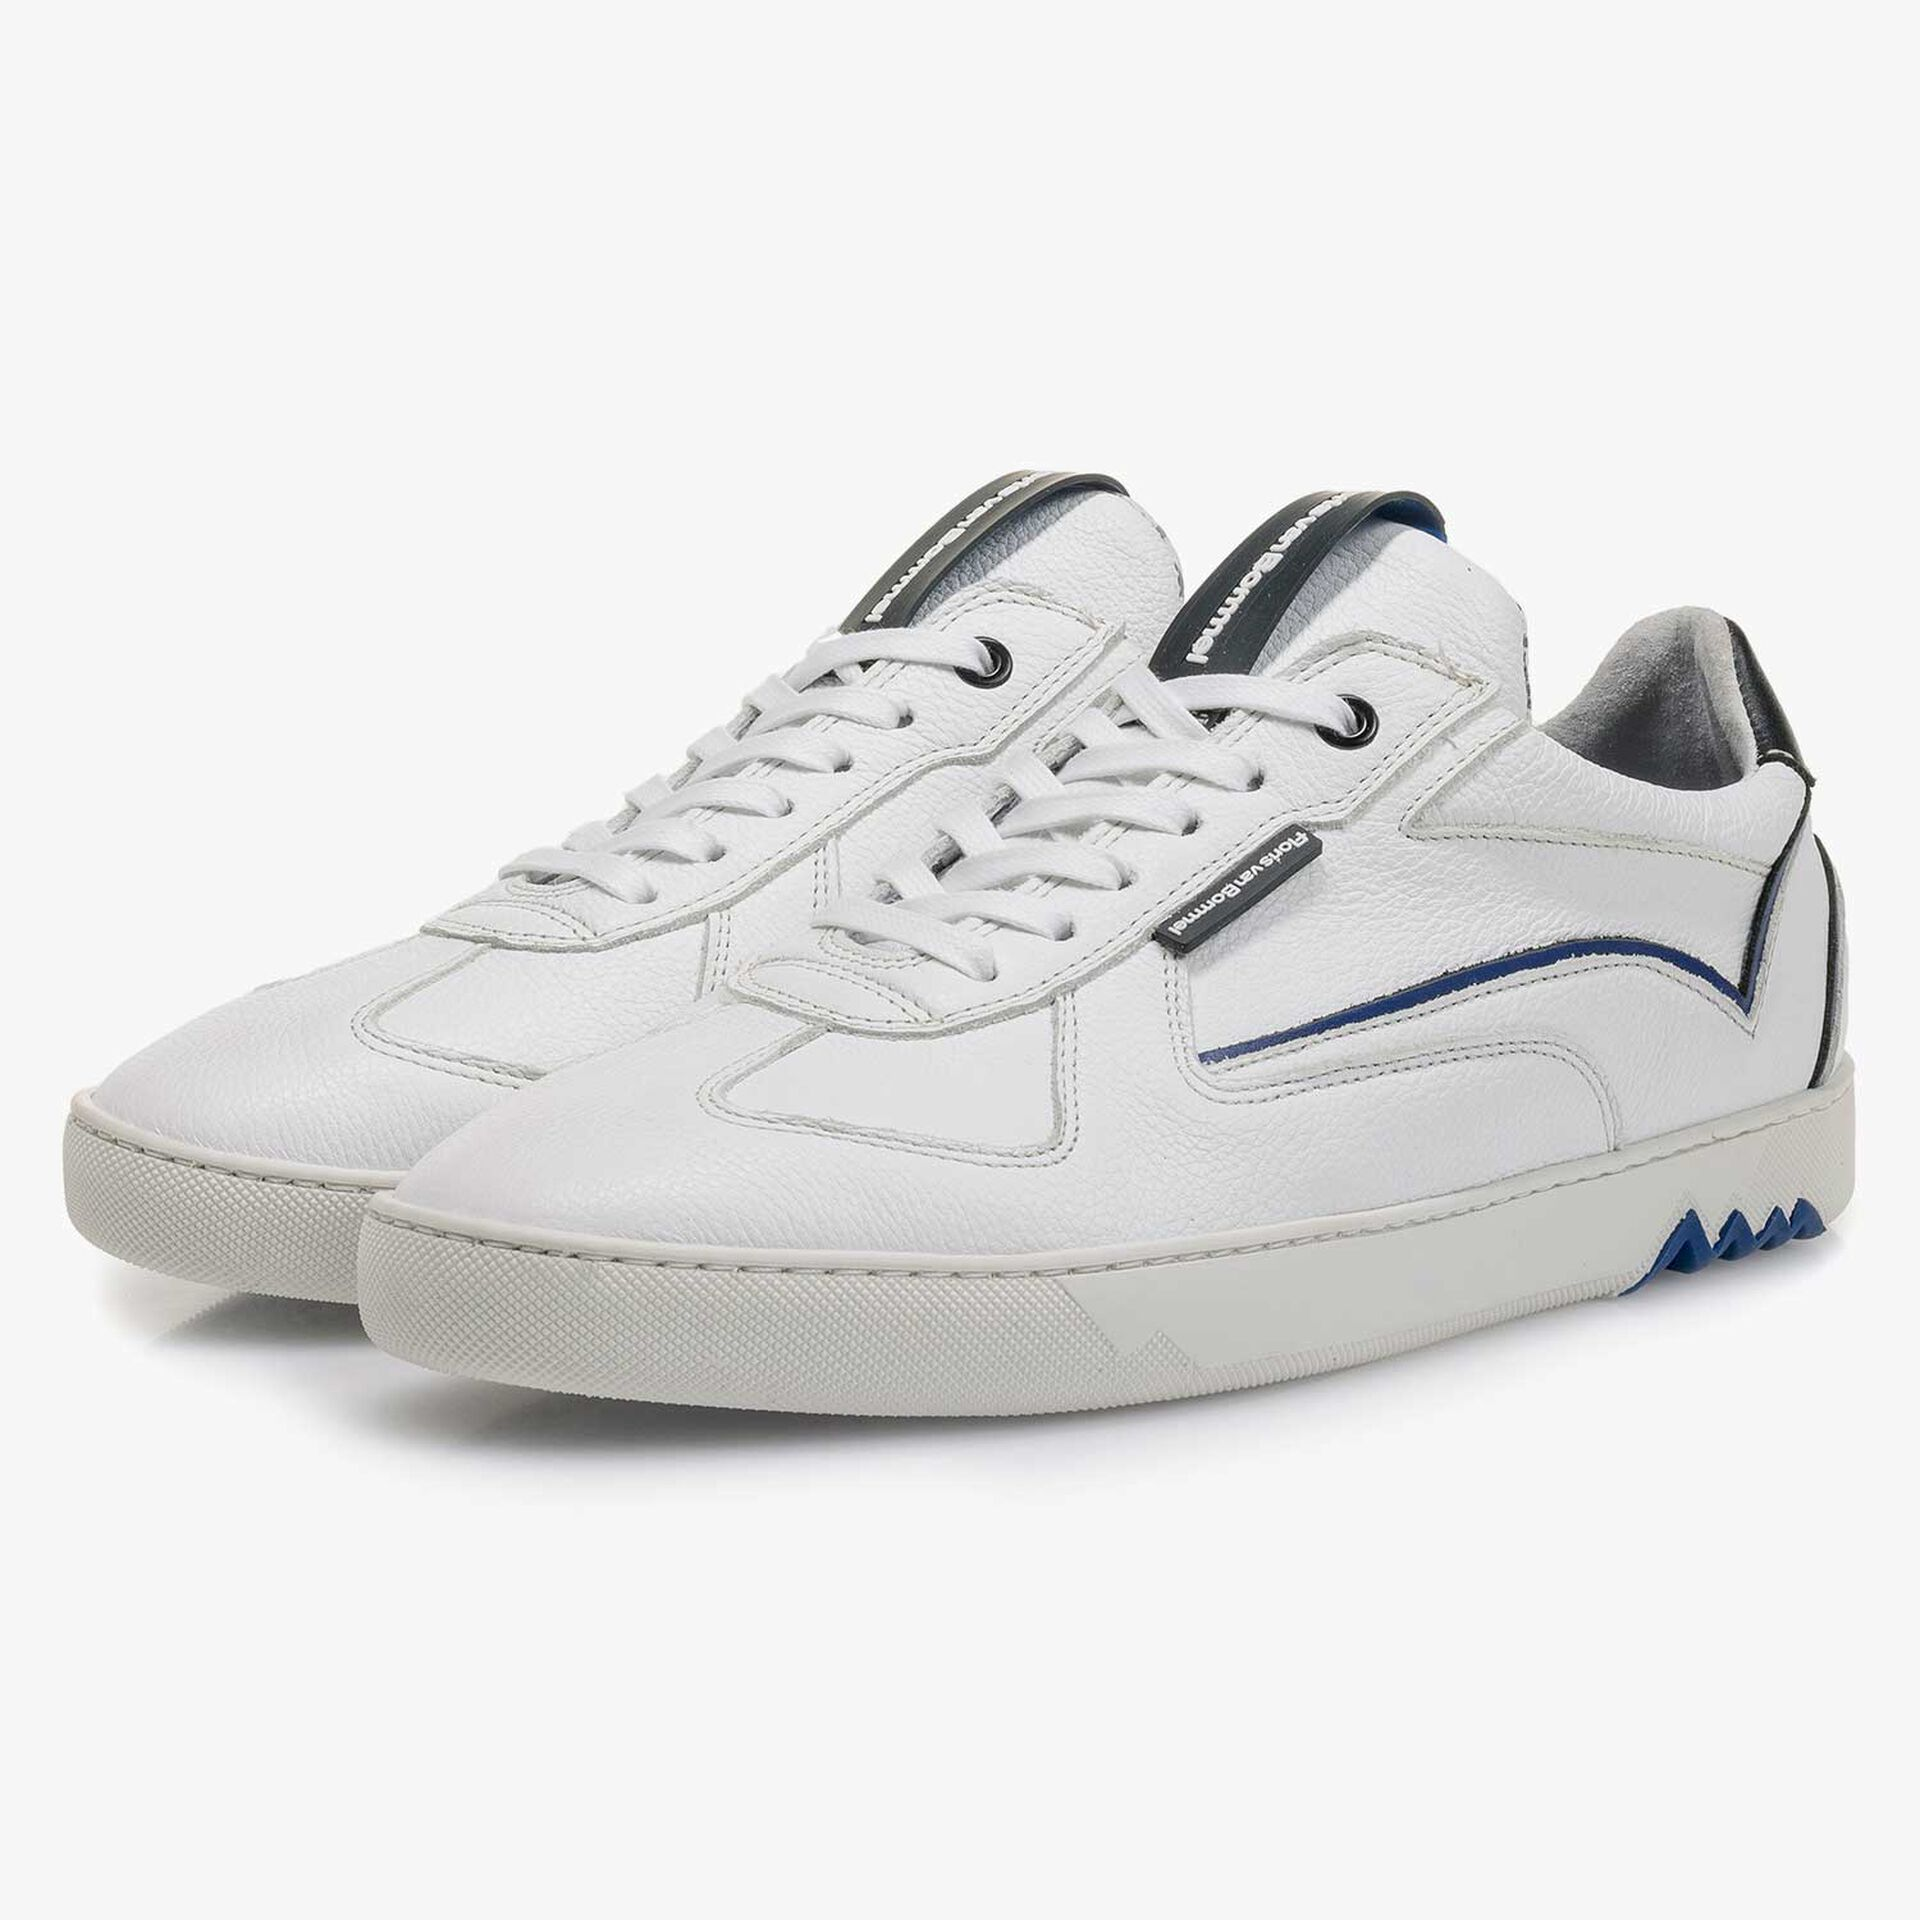 White calf leather sneaker